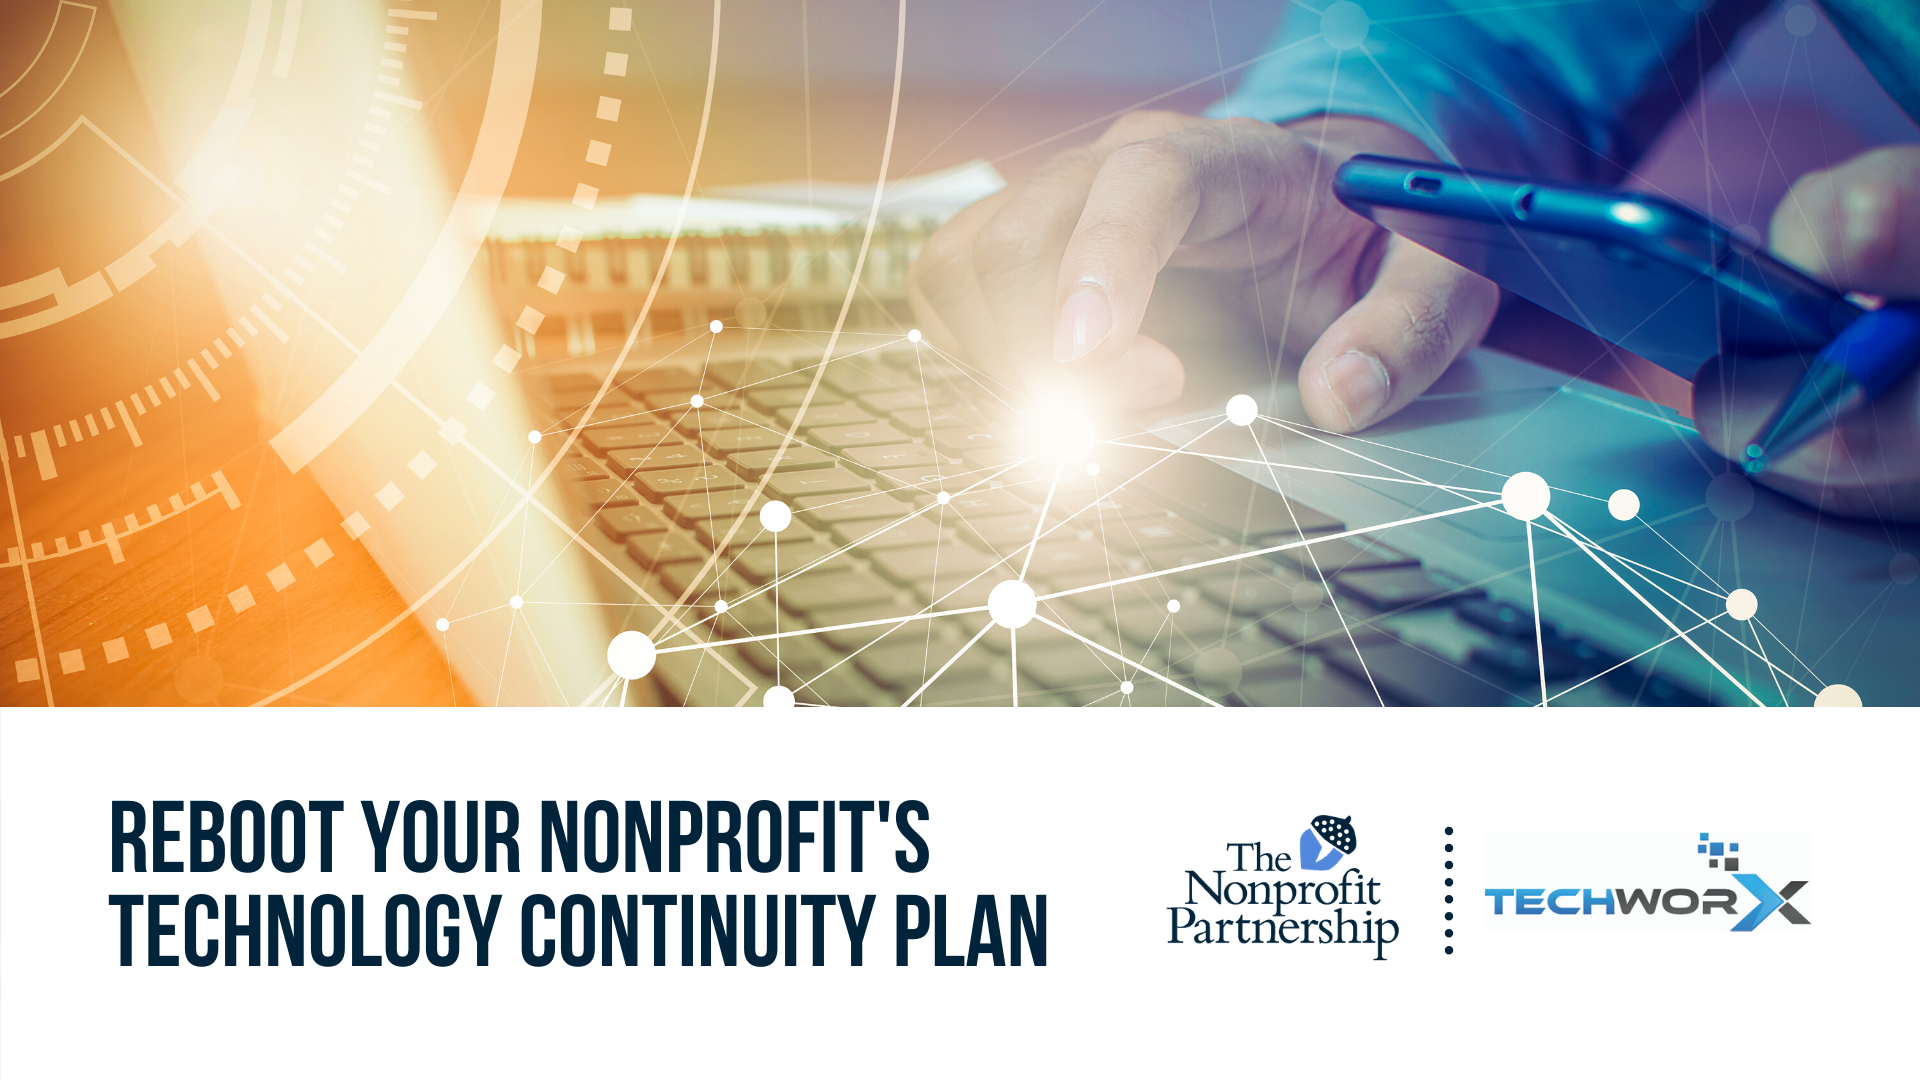 [NPP WEBINAR] Reboot Your Nonprofit's Technology Continuity Plan